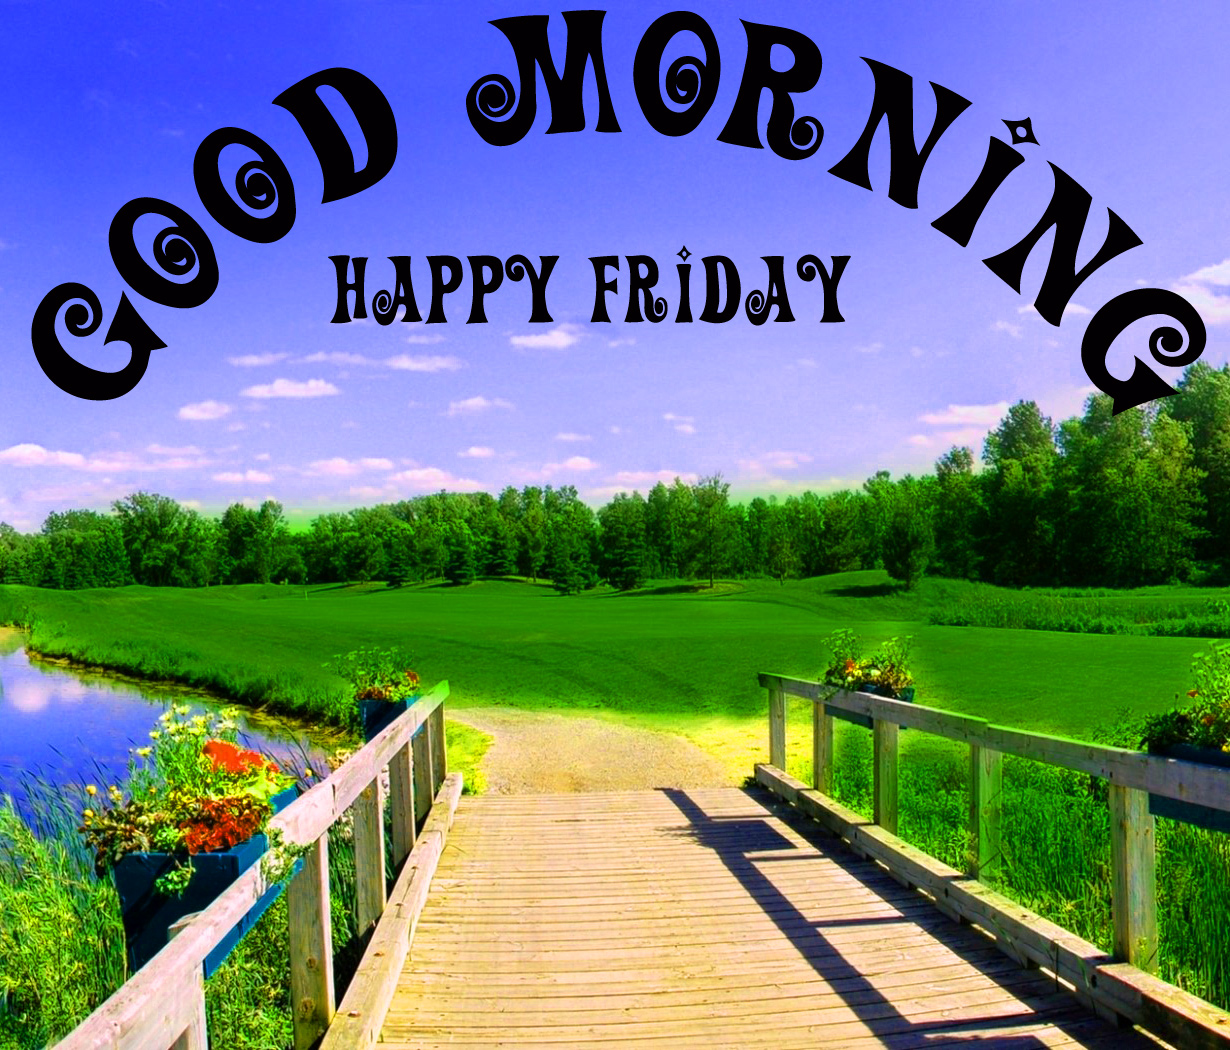 Good morning beautiful friday Images Photo for WhatsappGood morning beautiful friday Images (5)